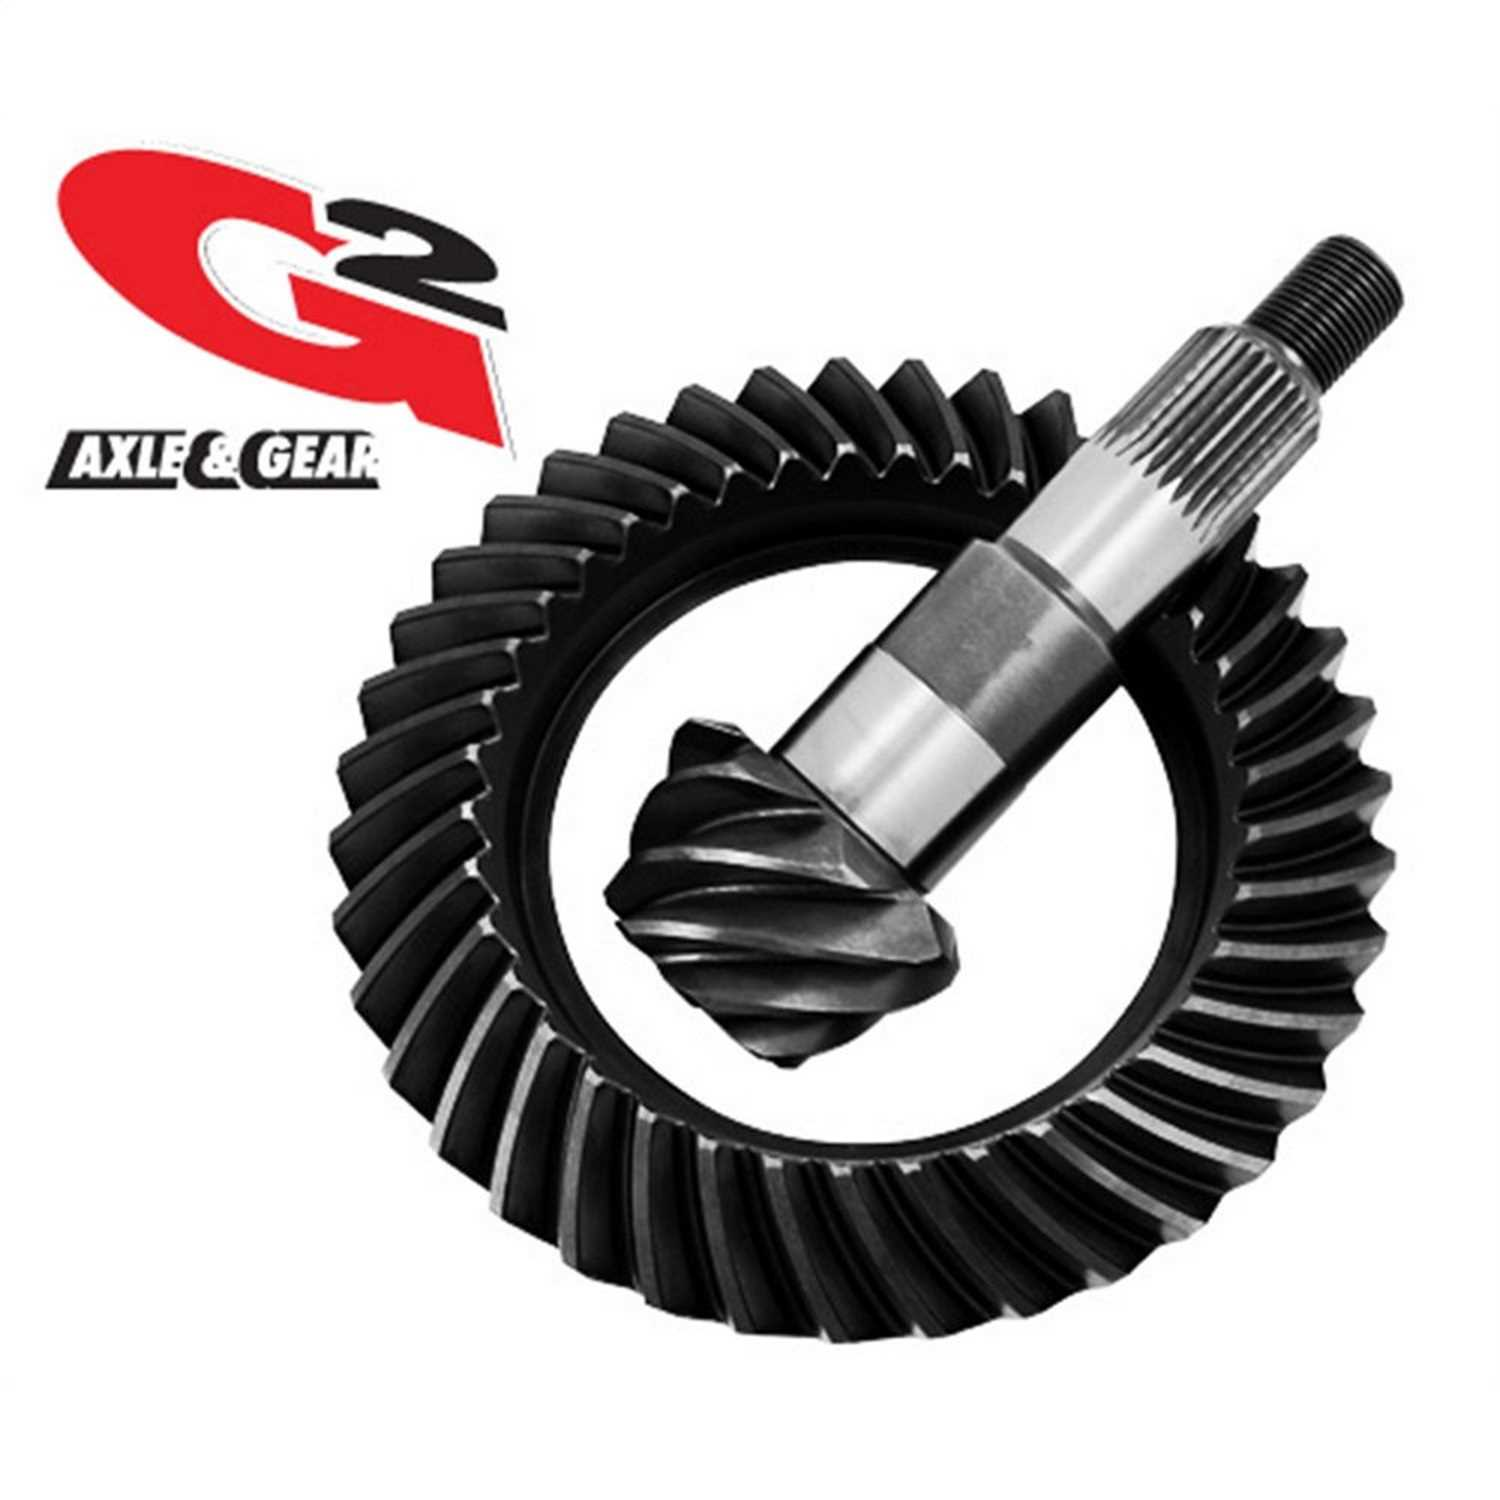 1-2026-373 G2 Axle and Gear Ring and Pinion Set